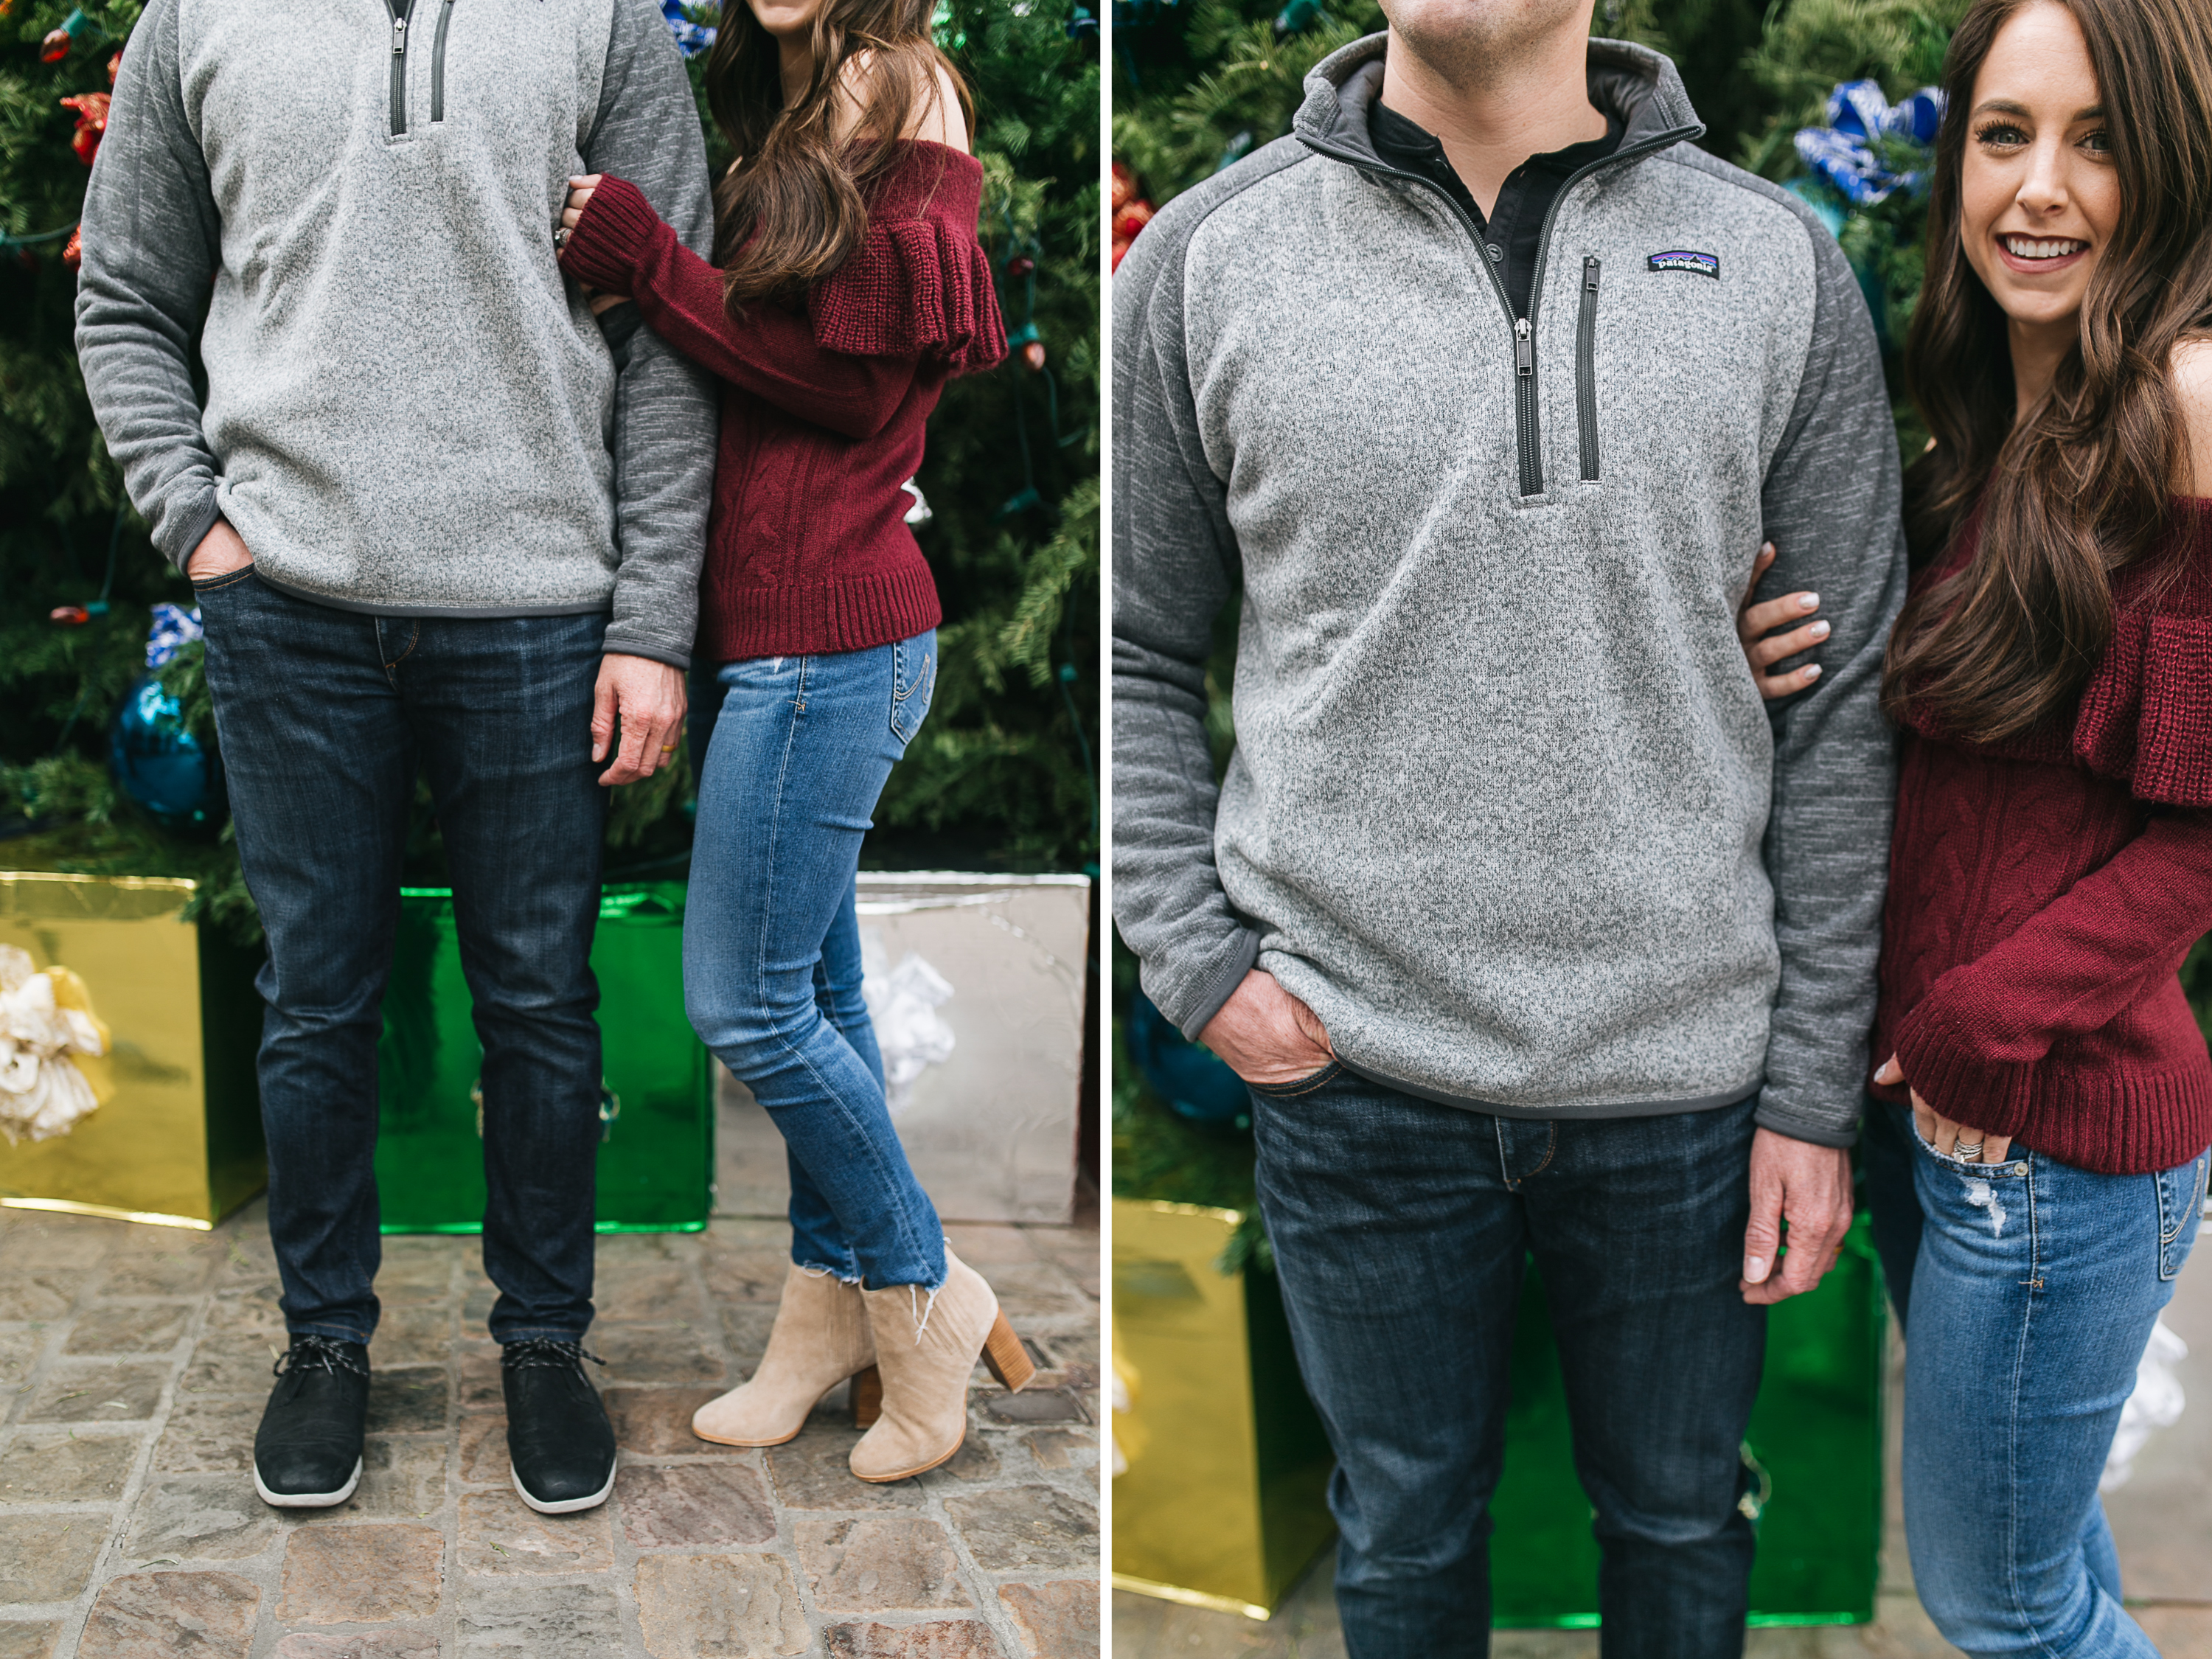 Style blogger Daryl-Ann Denner shares last minute gift ideas for guys for Christmas including Patagonia sweatshirts, ugg slippers, bluetooth headphones, and a drone